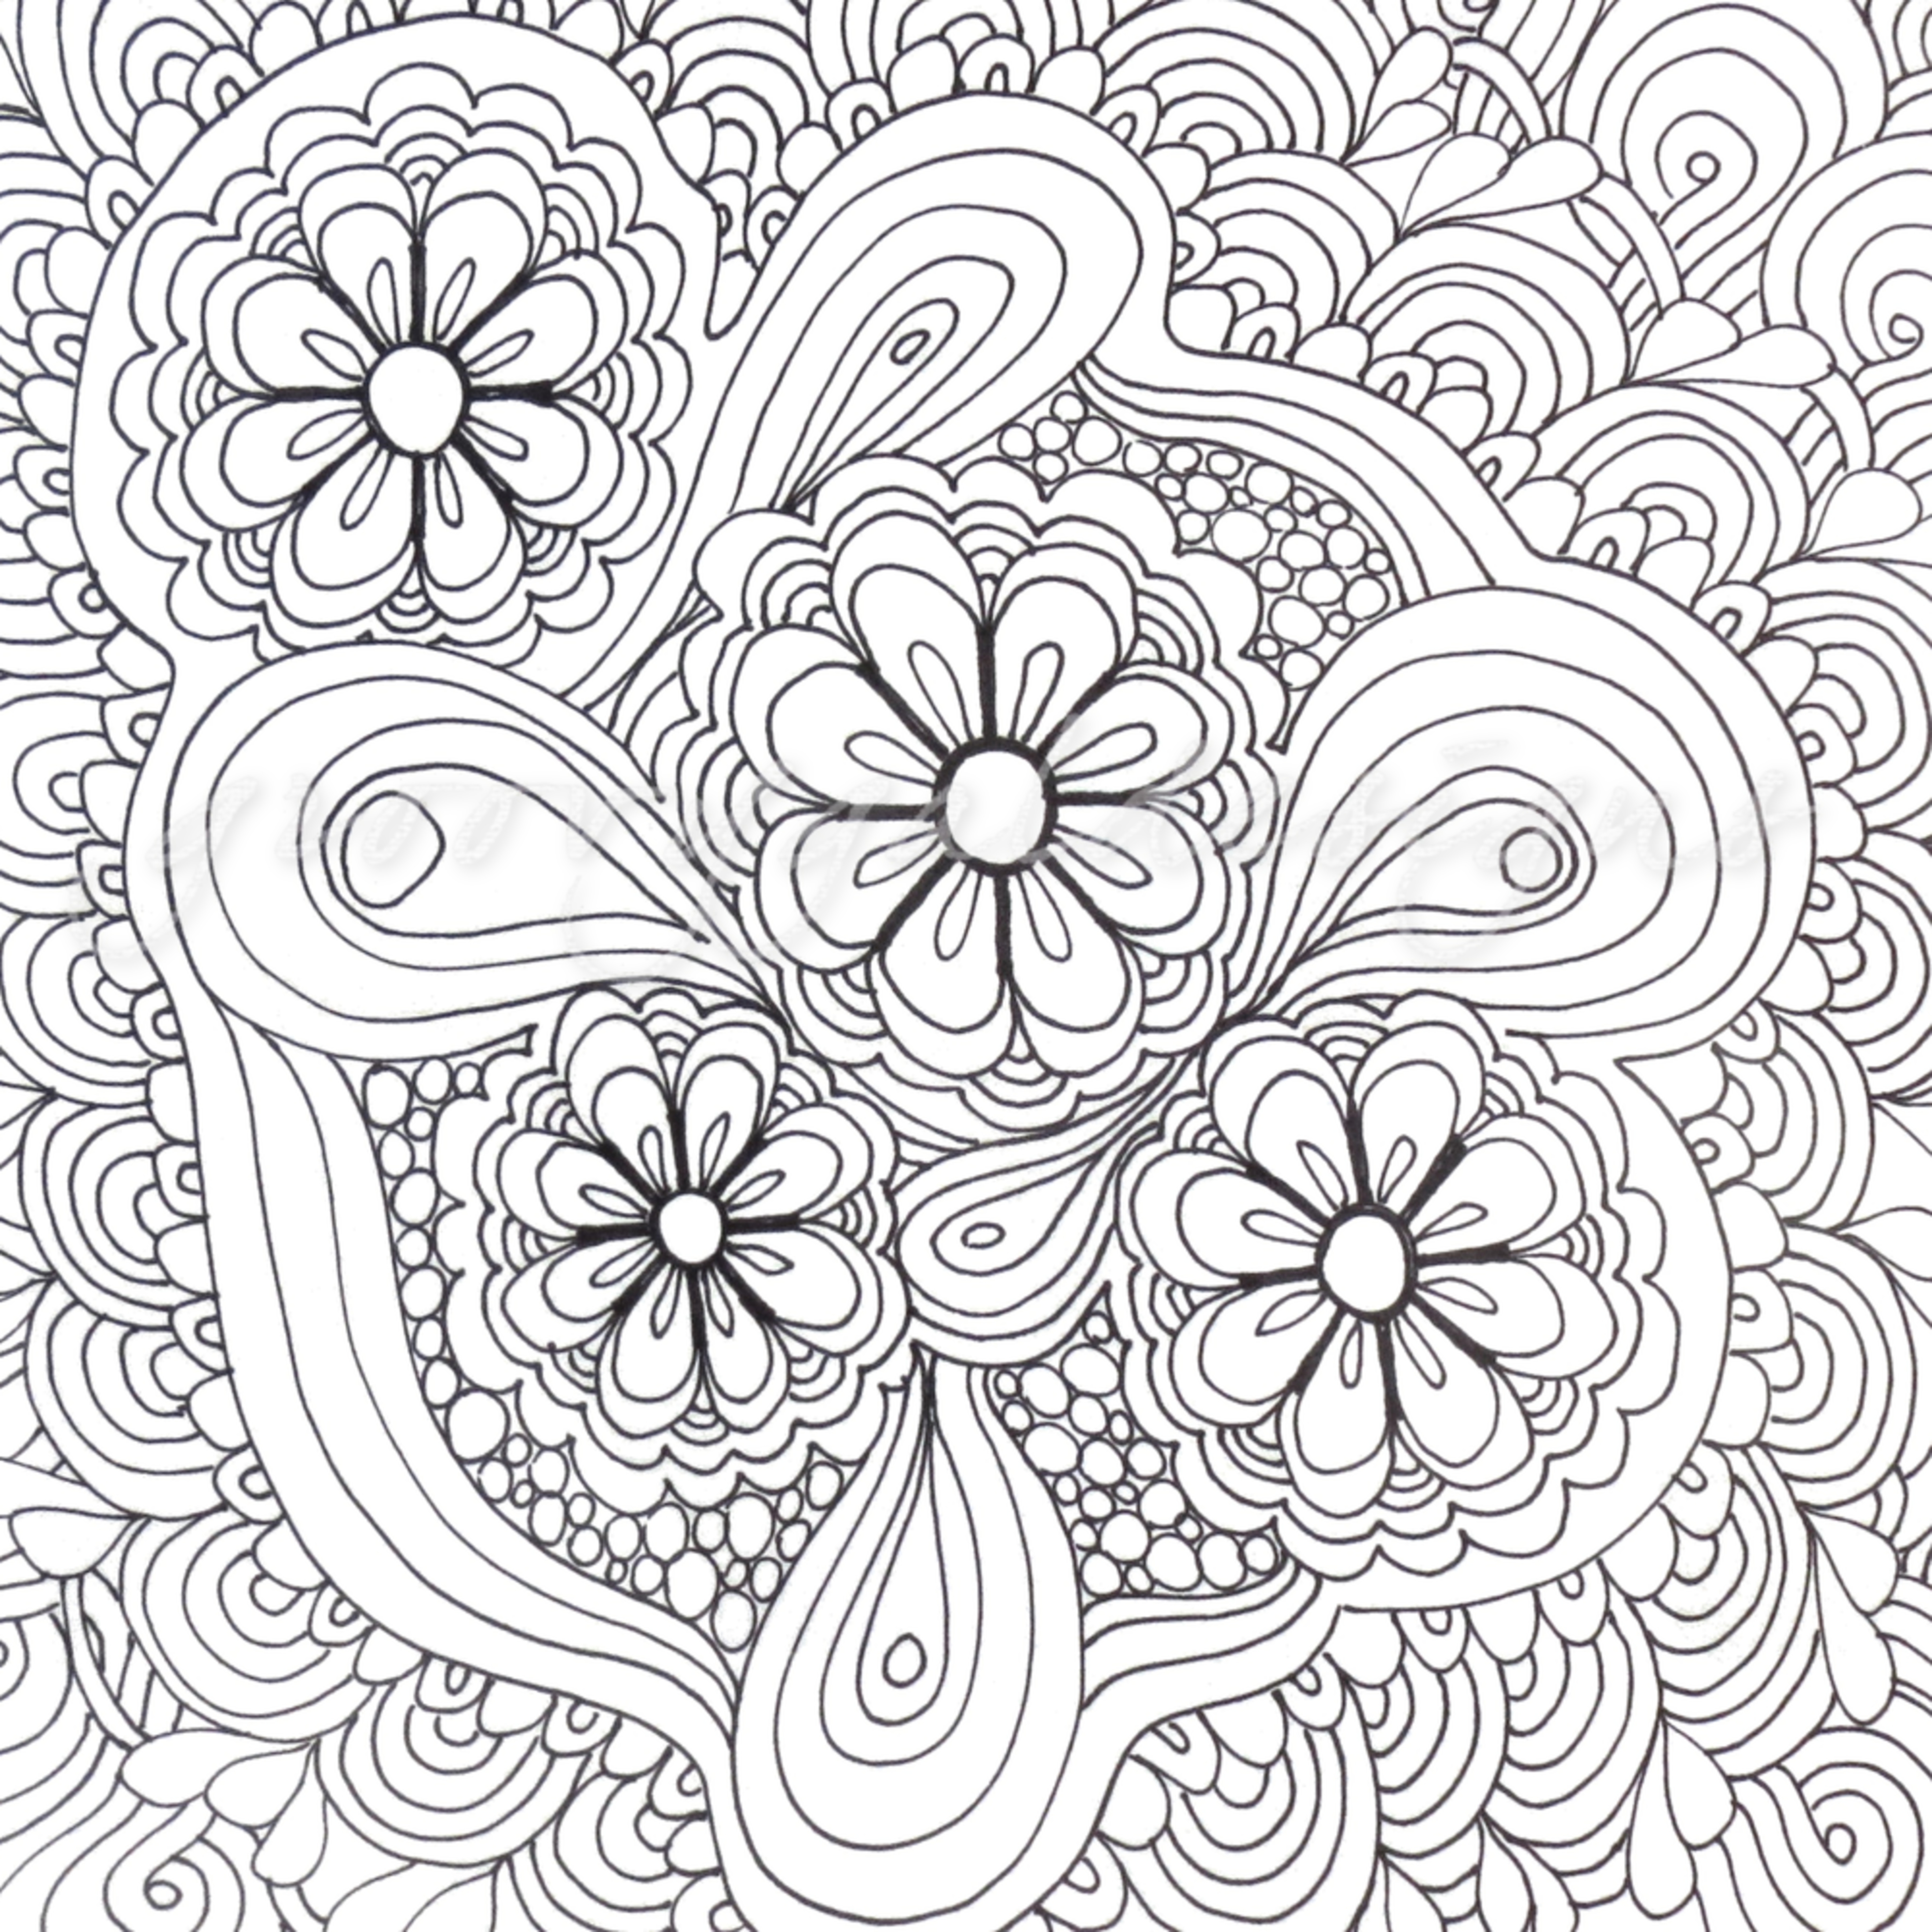 Flower tangle color it utg6y8